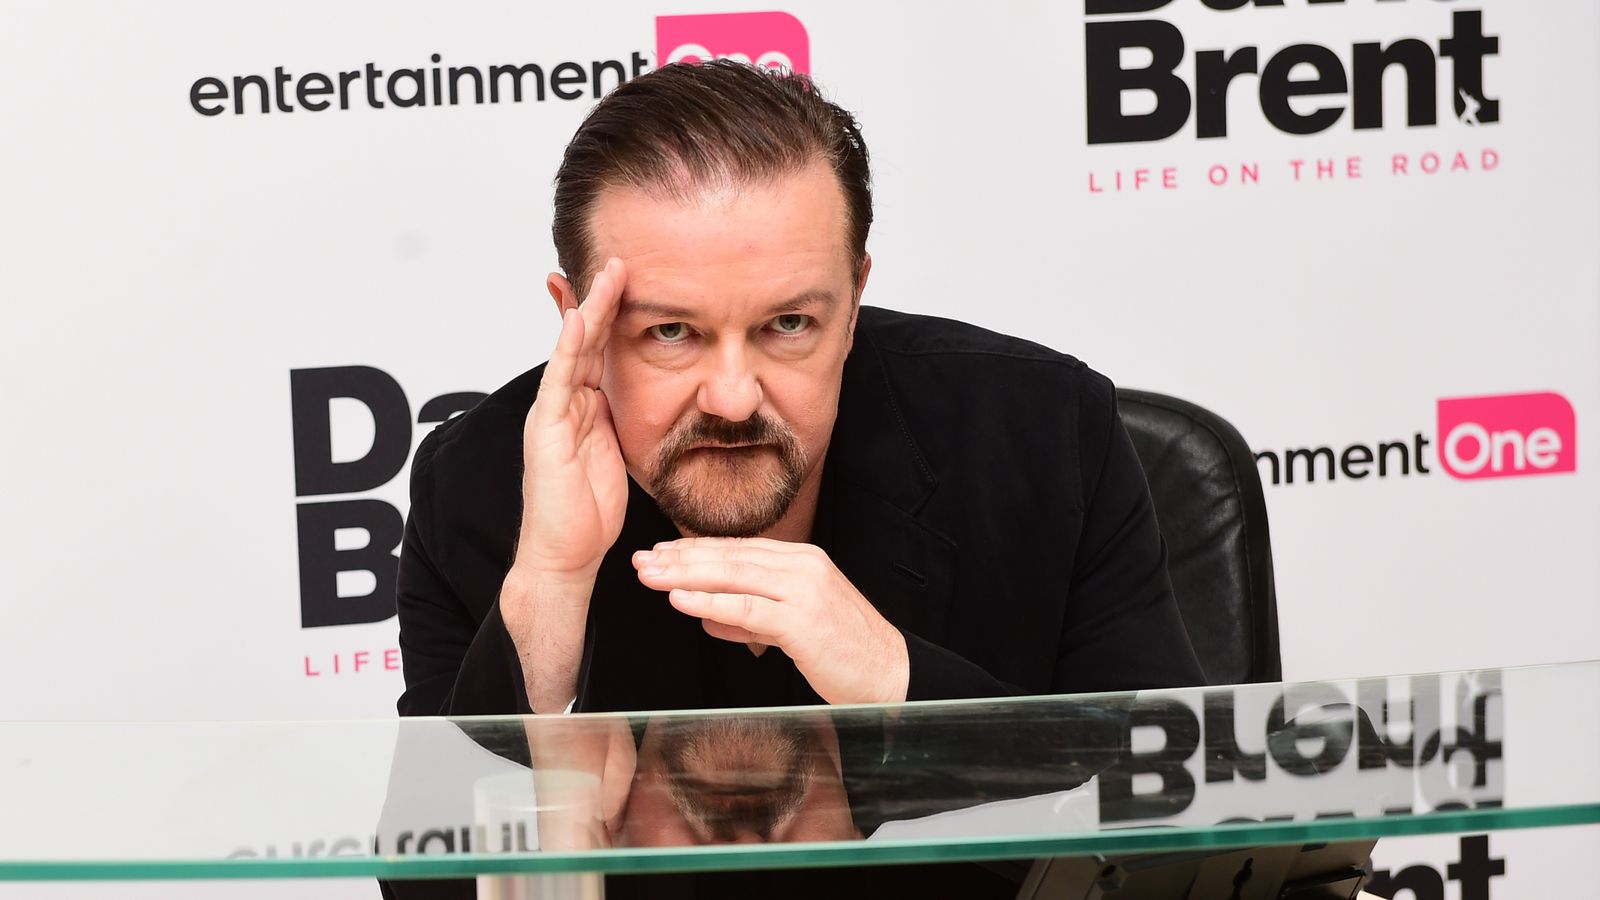 Ricky Gervais suggests The Office would not get made now due to cancel culture and political correctness